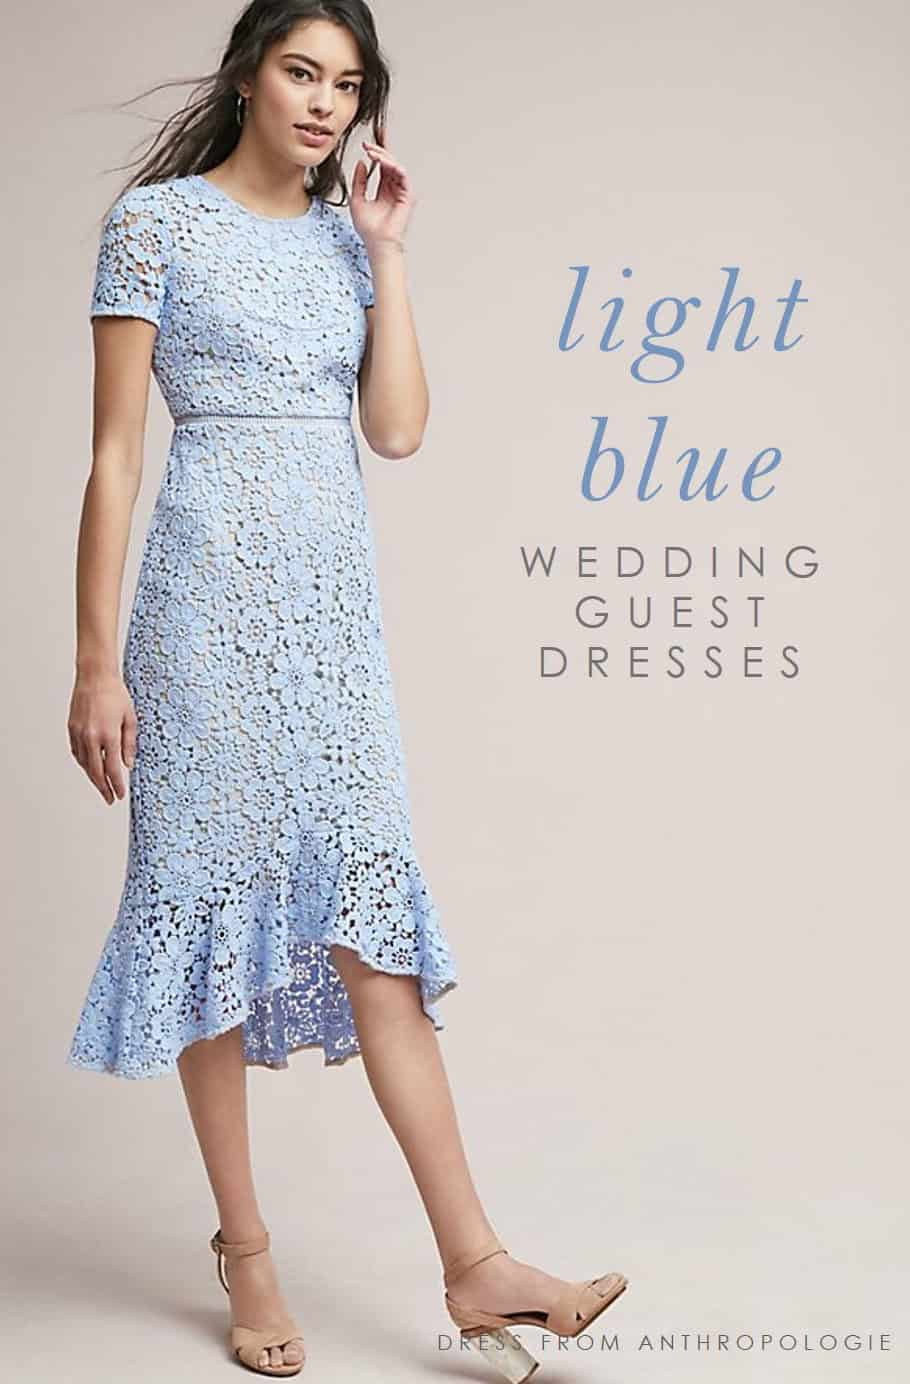 guest dresses for wedding light blue dresses 4636